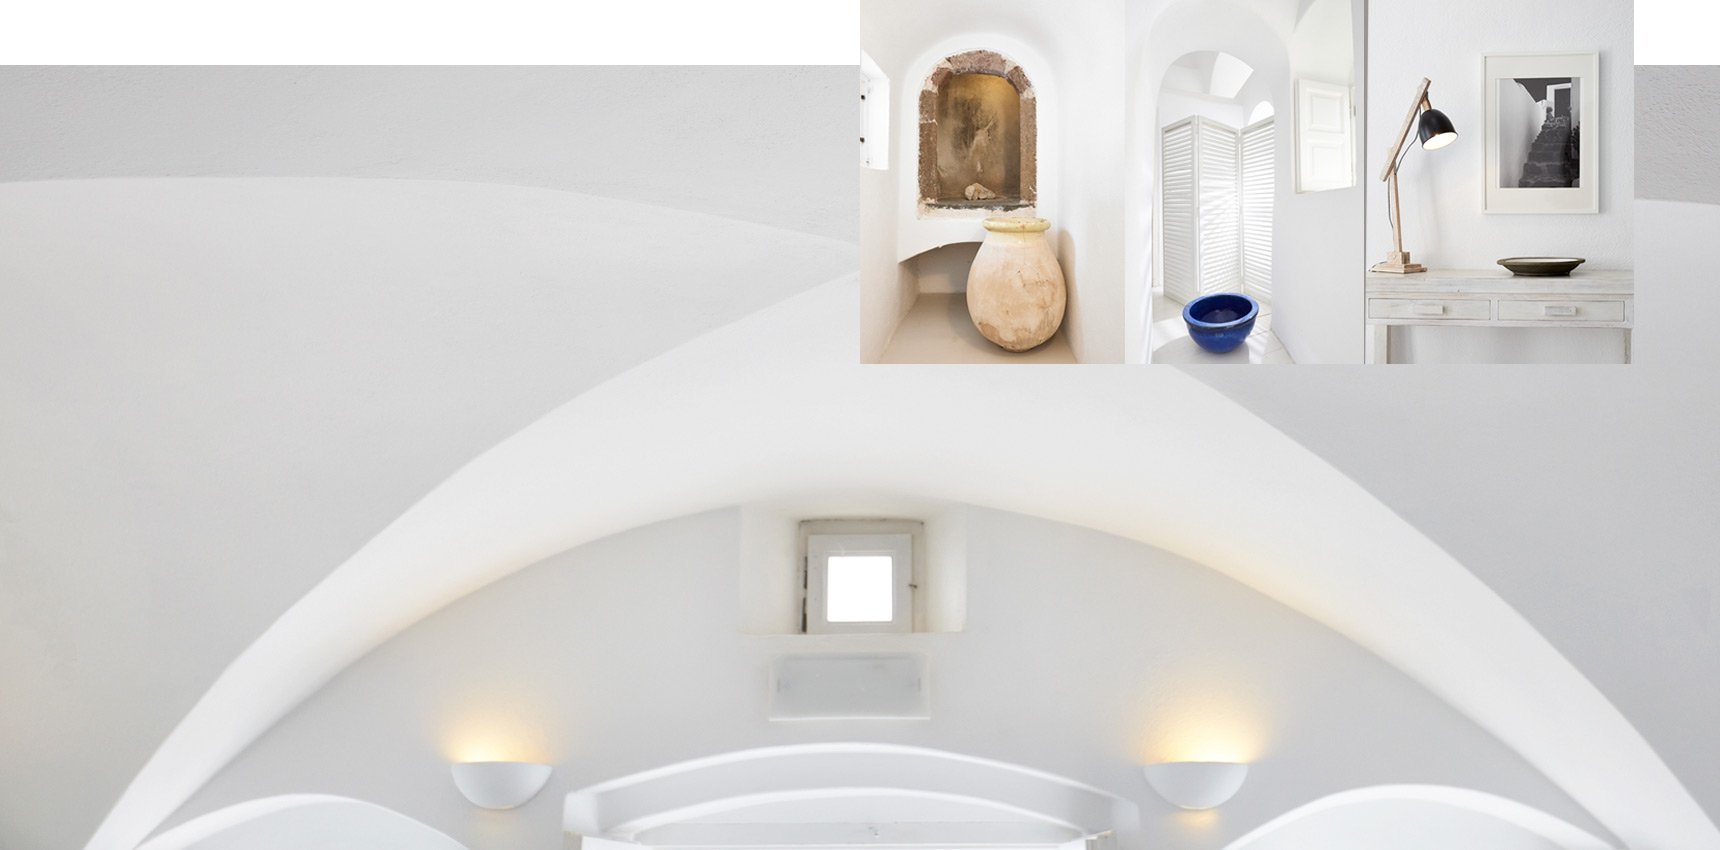 TIMELESS CYCLADIC ARCHITECTURE